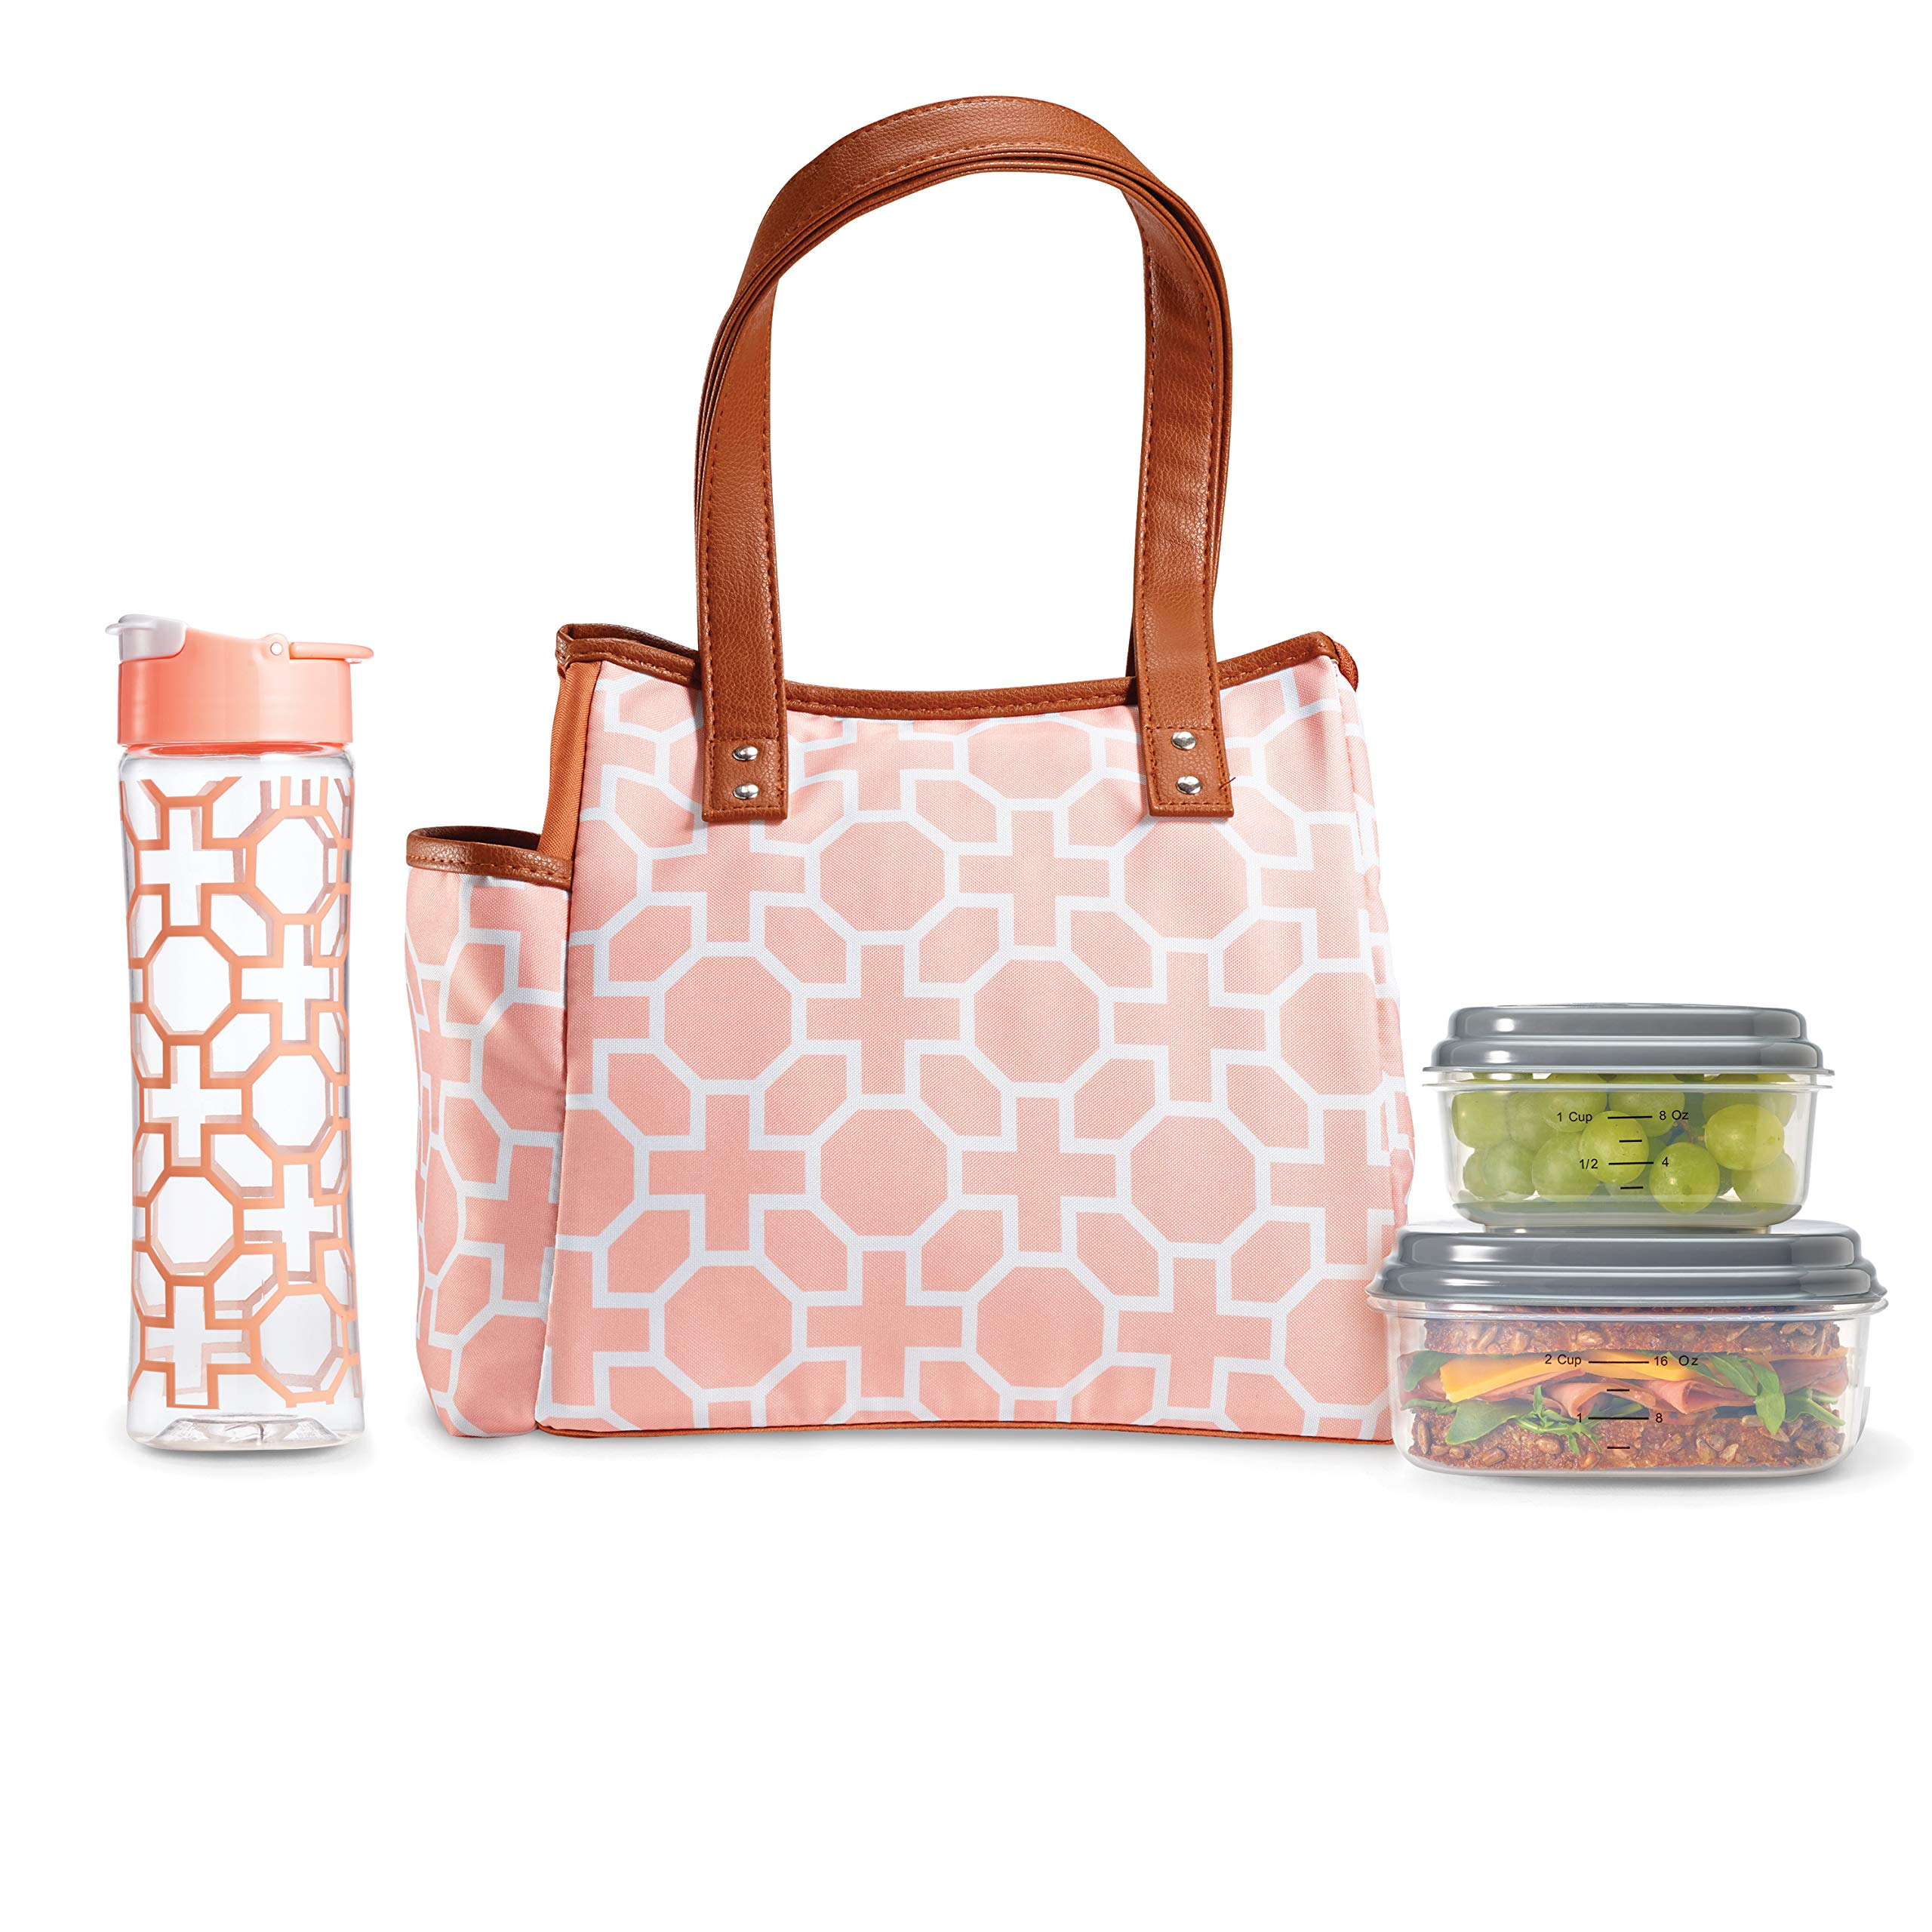 Fit & Fresh Insulated Lunch Bag Kit, includes Matching Bottle and Containers, Westerly Classic Trellis Blush